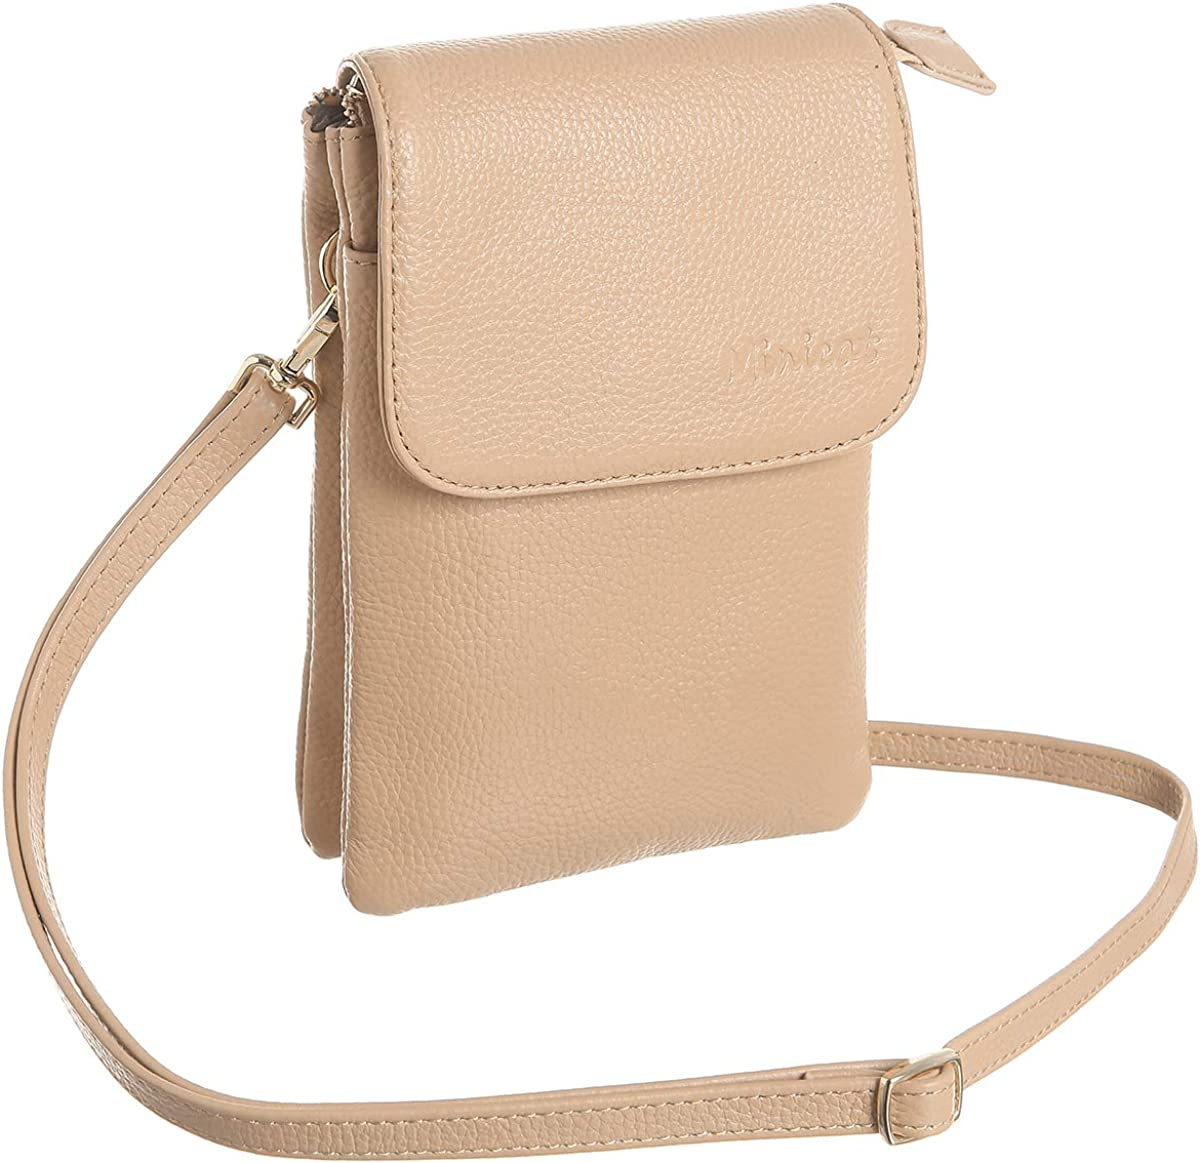 MINICAT Leather Small Crossbody Bags RFID Blocking Cell Phone Purse Wallet for Women